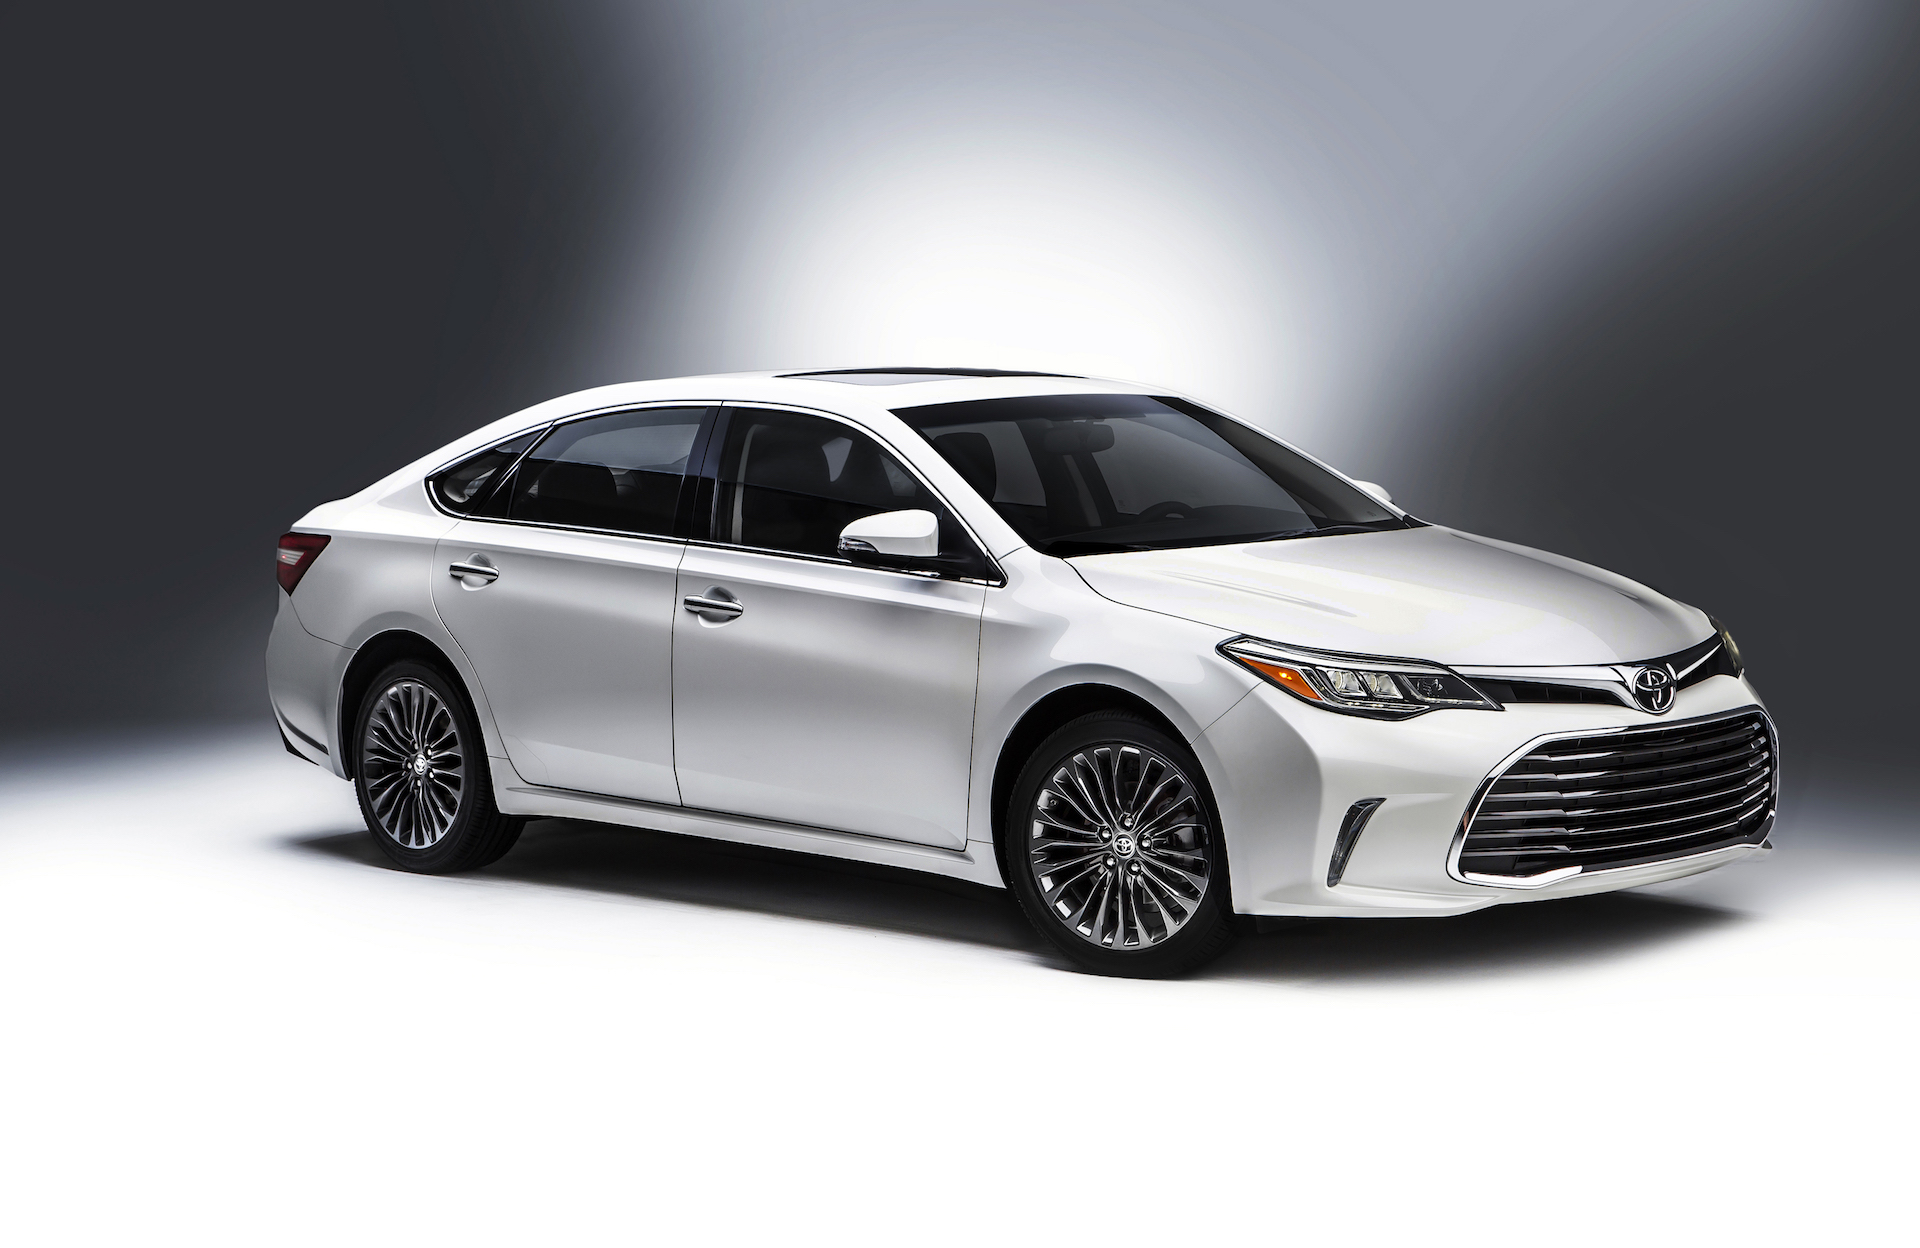 2016 toyota avalon styling review   the car connection